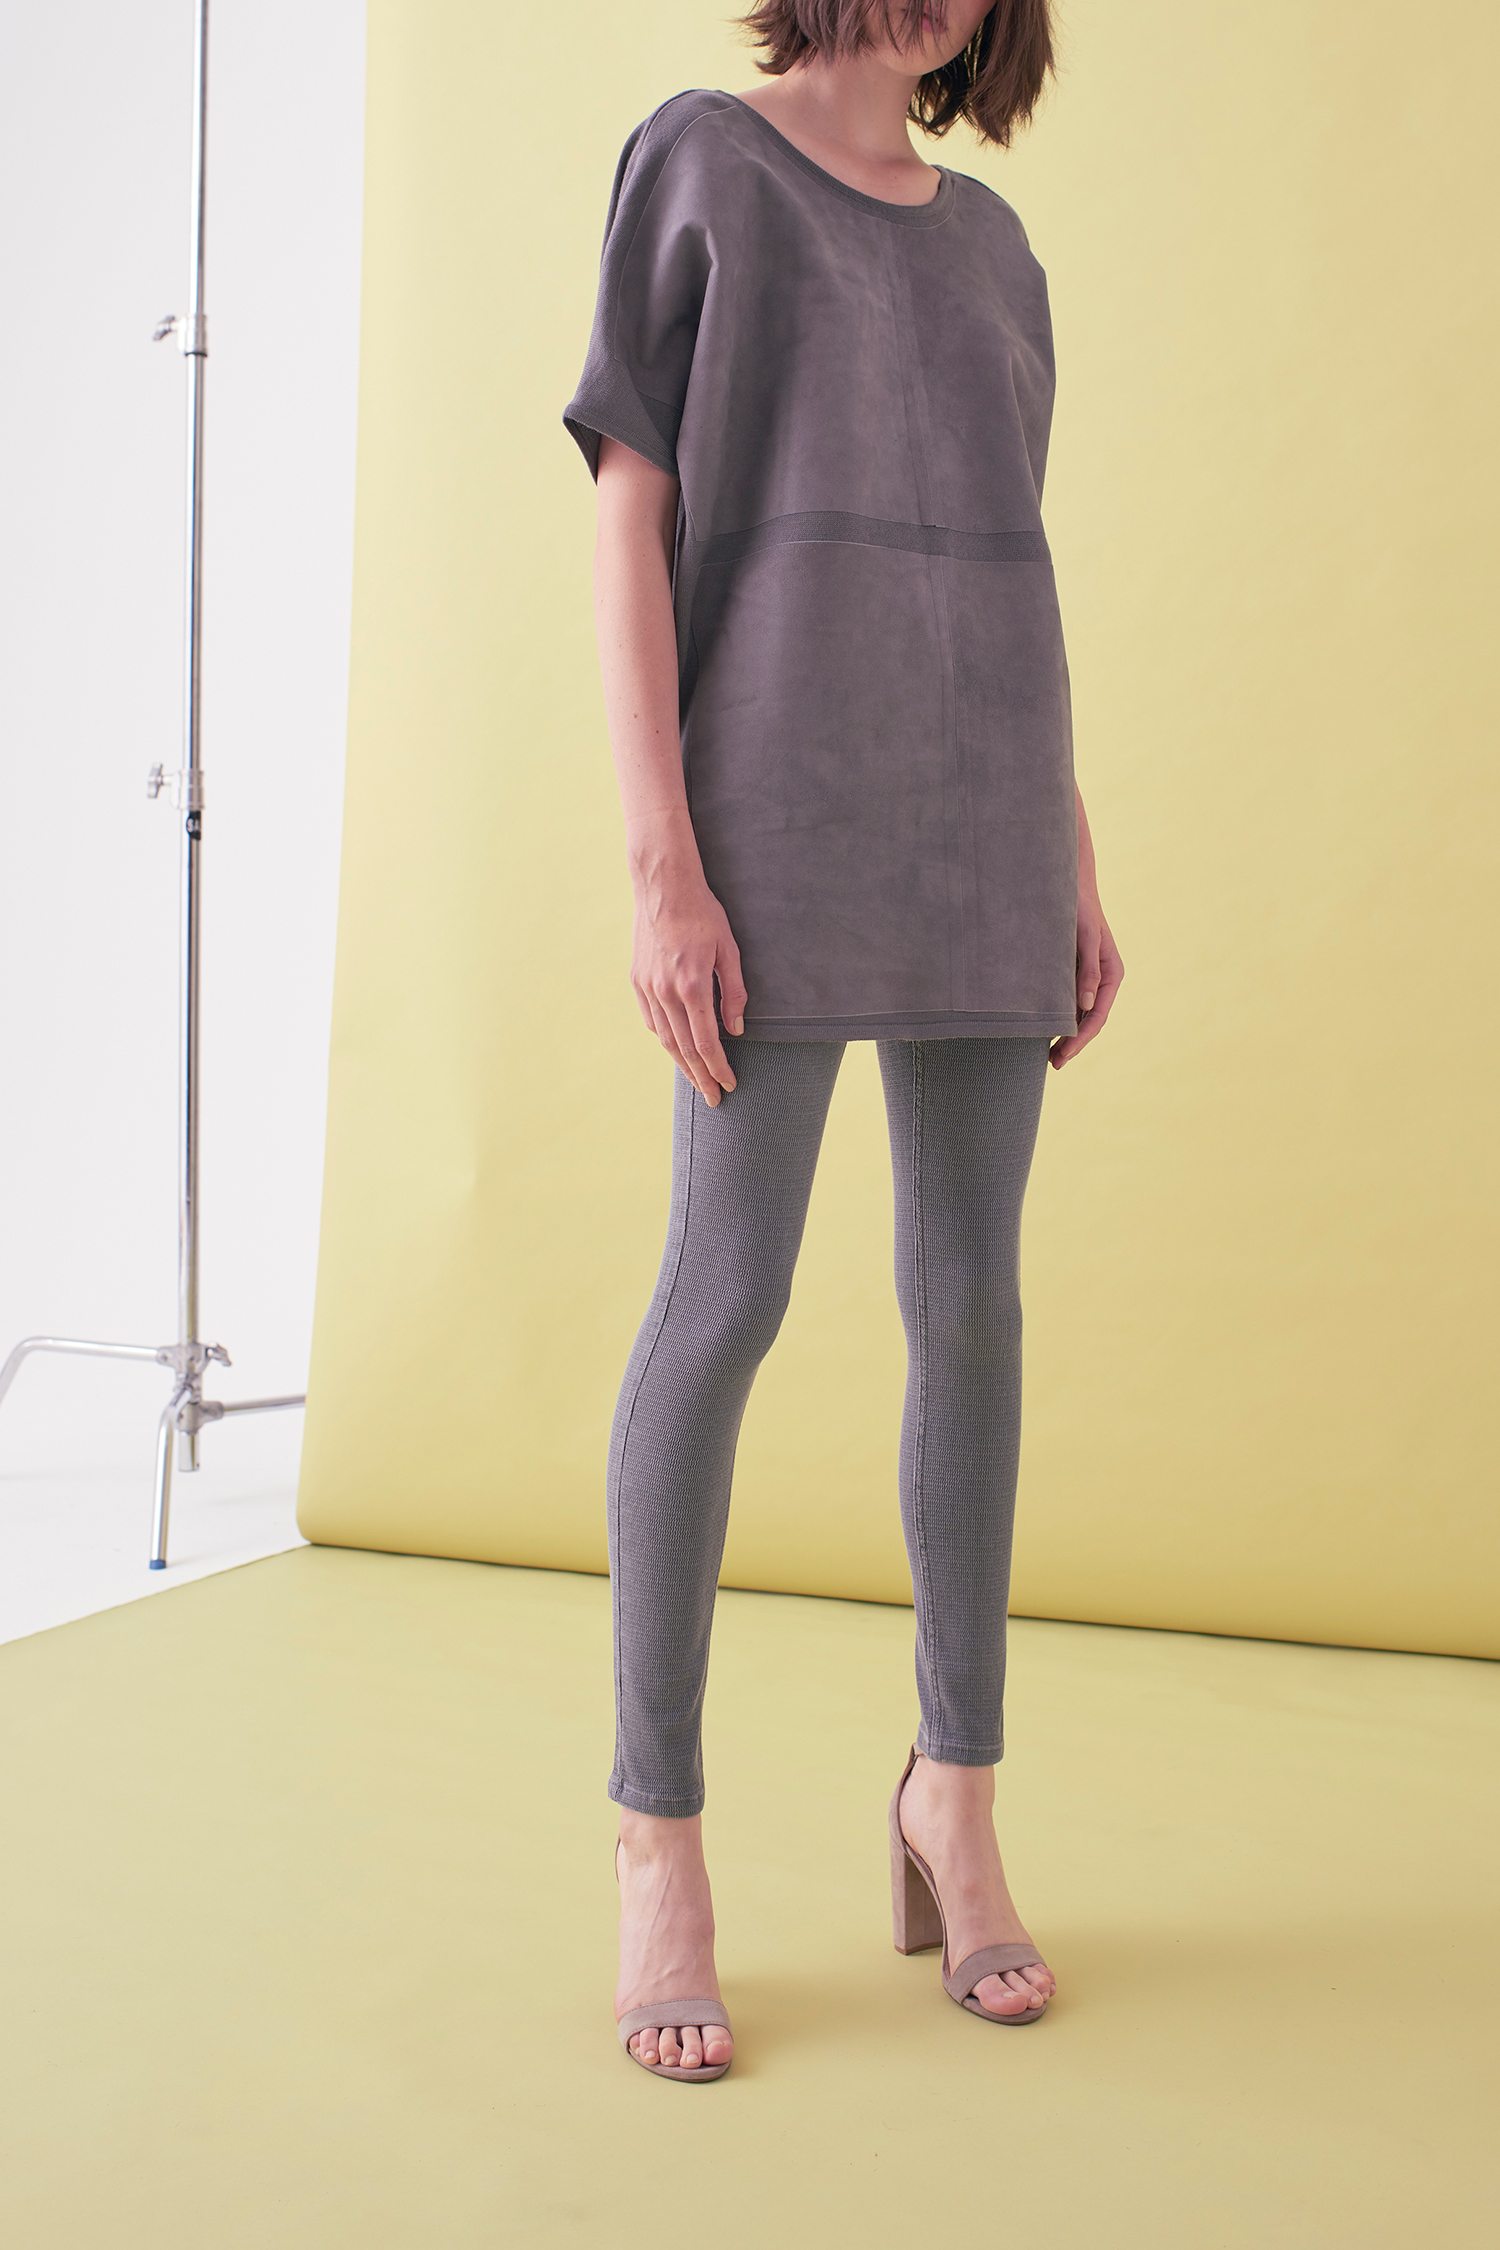 Sarah_Swann_SS17_07_Suede_And_Knit_Sweater_Pewter_F.jpg